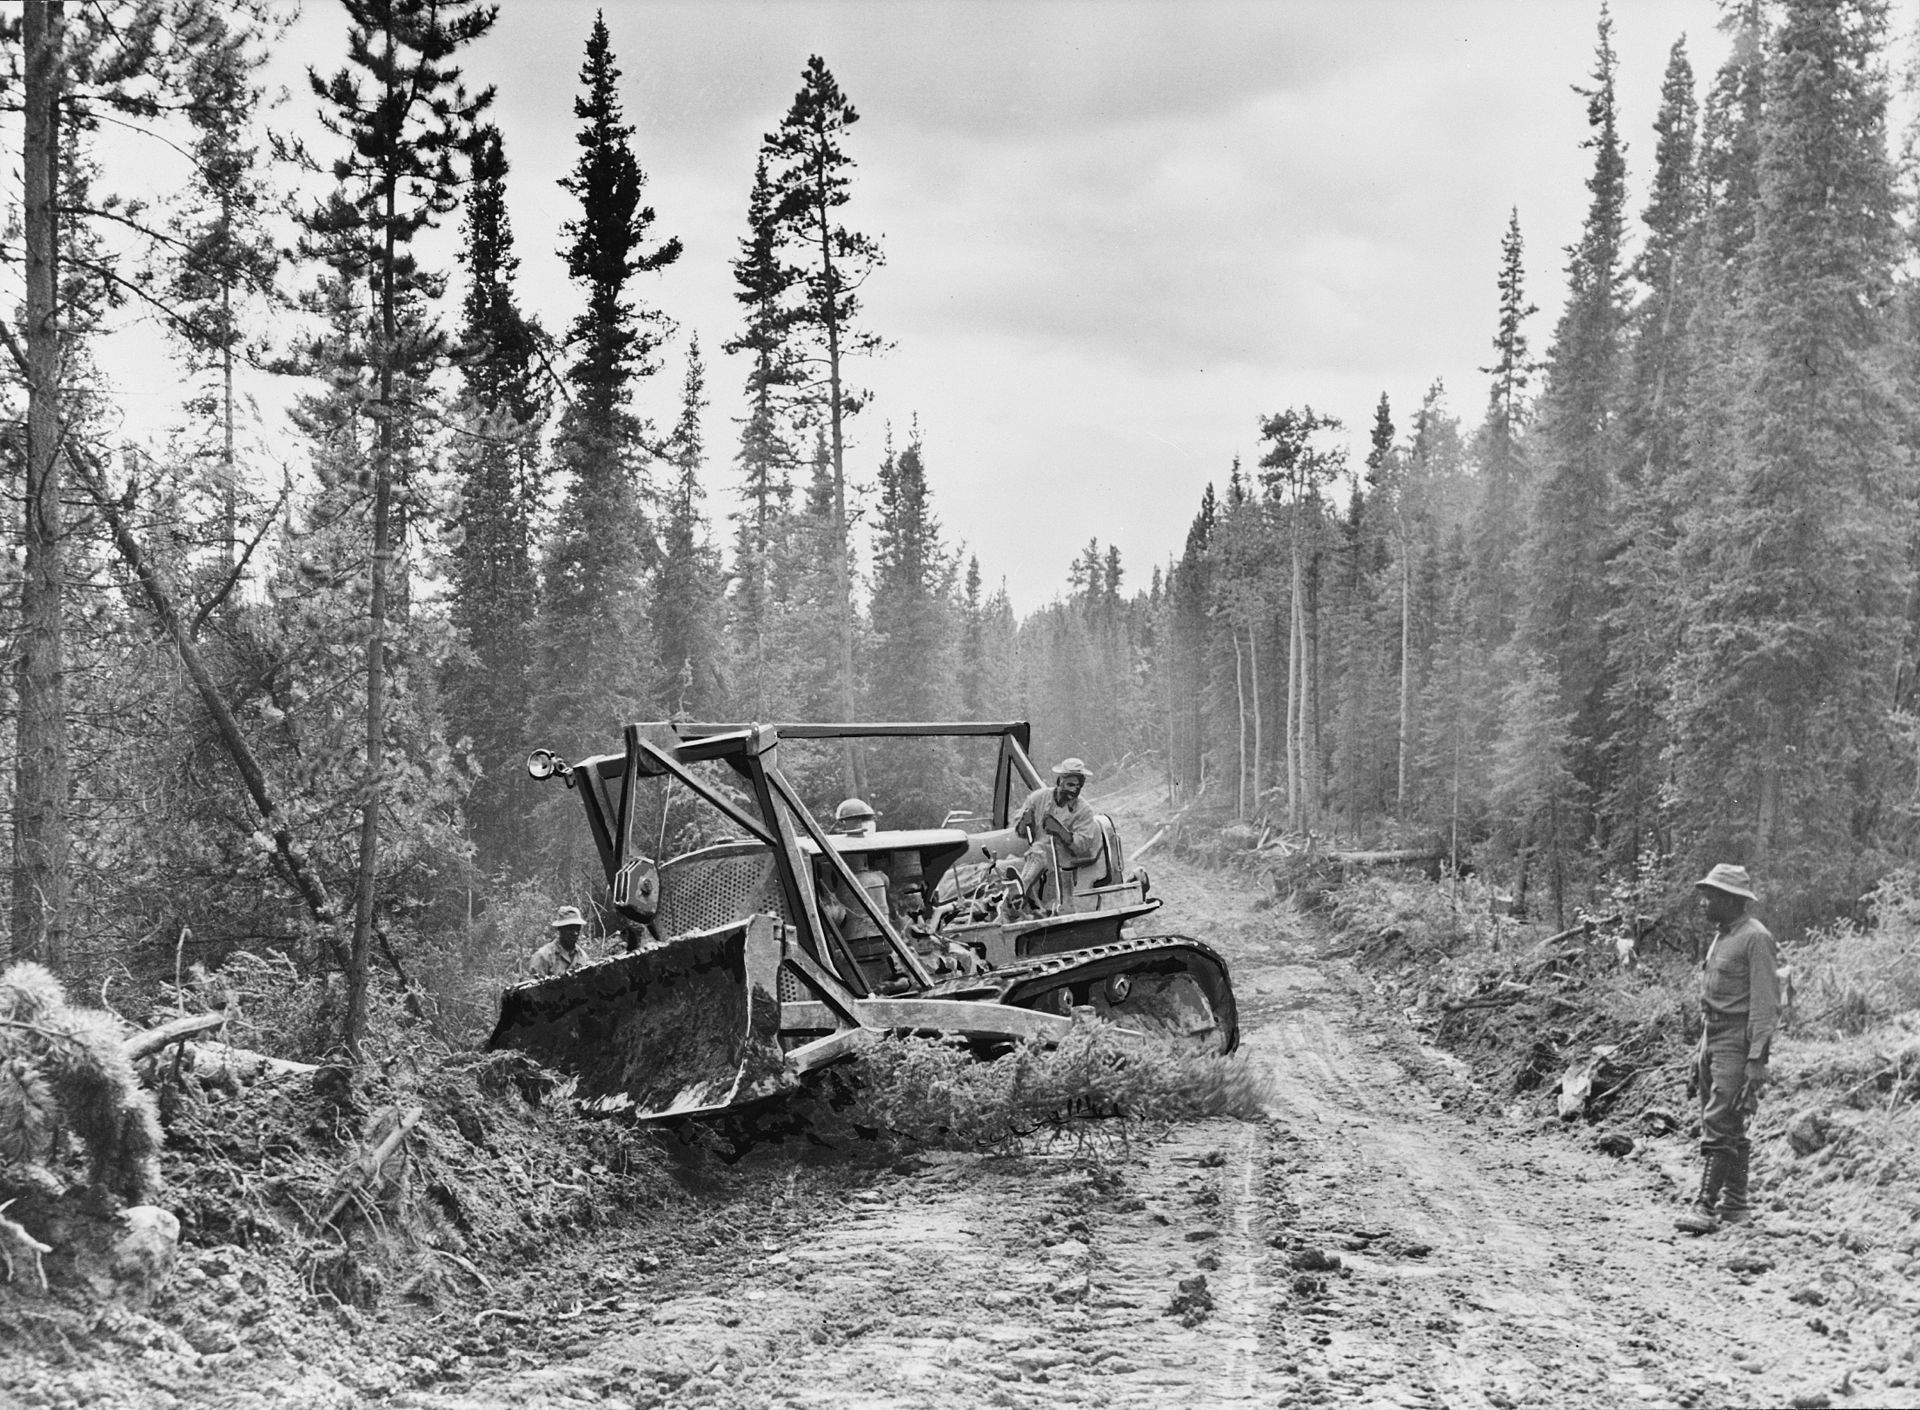 The roadway is widened in 1942 with a caterpillar tractor. Credit: Wikipedia.